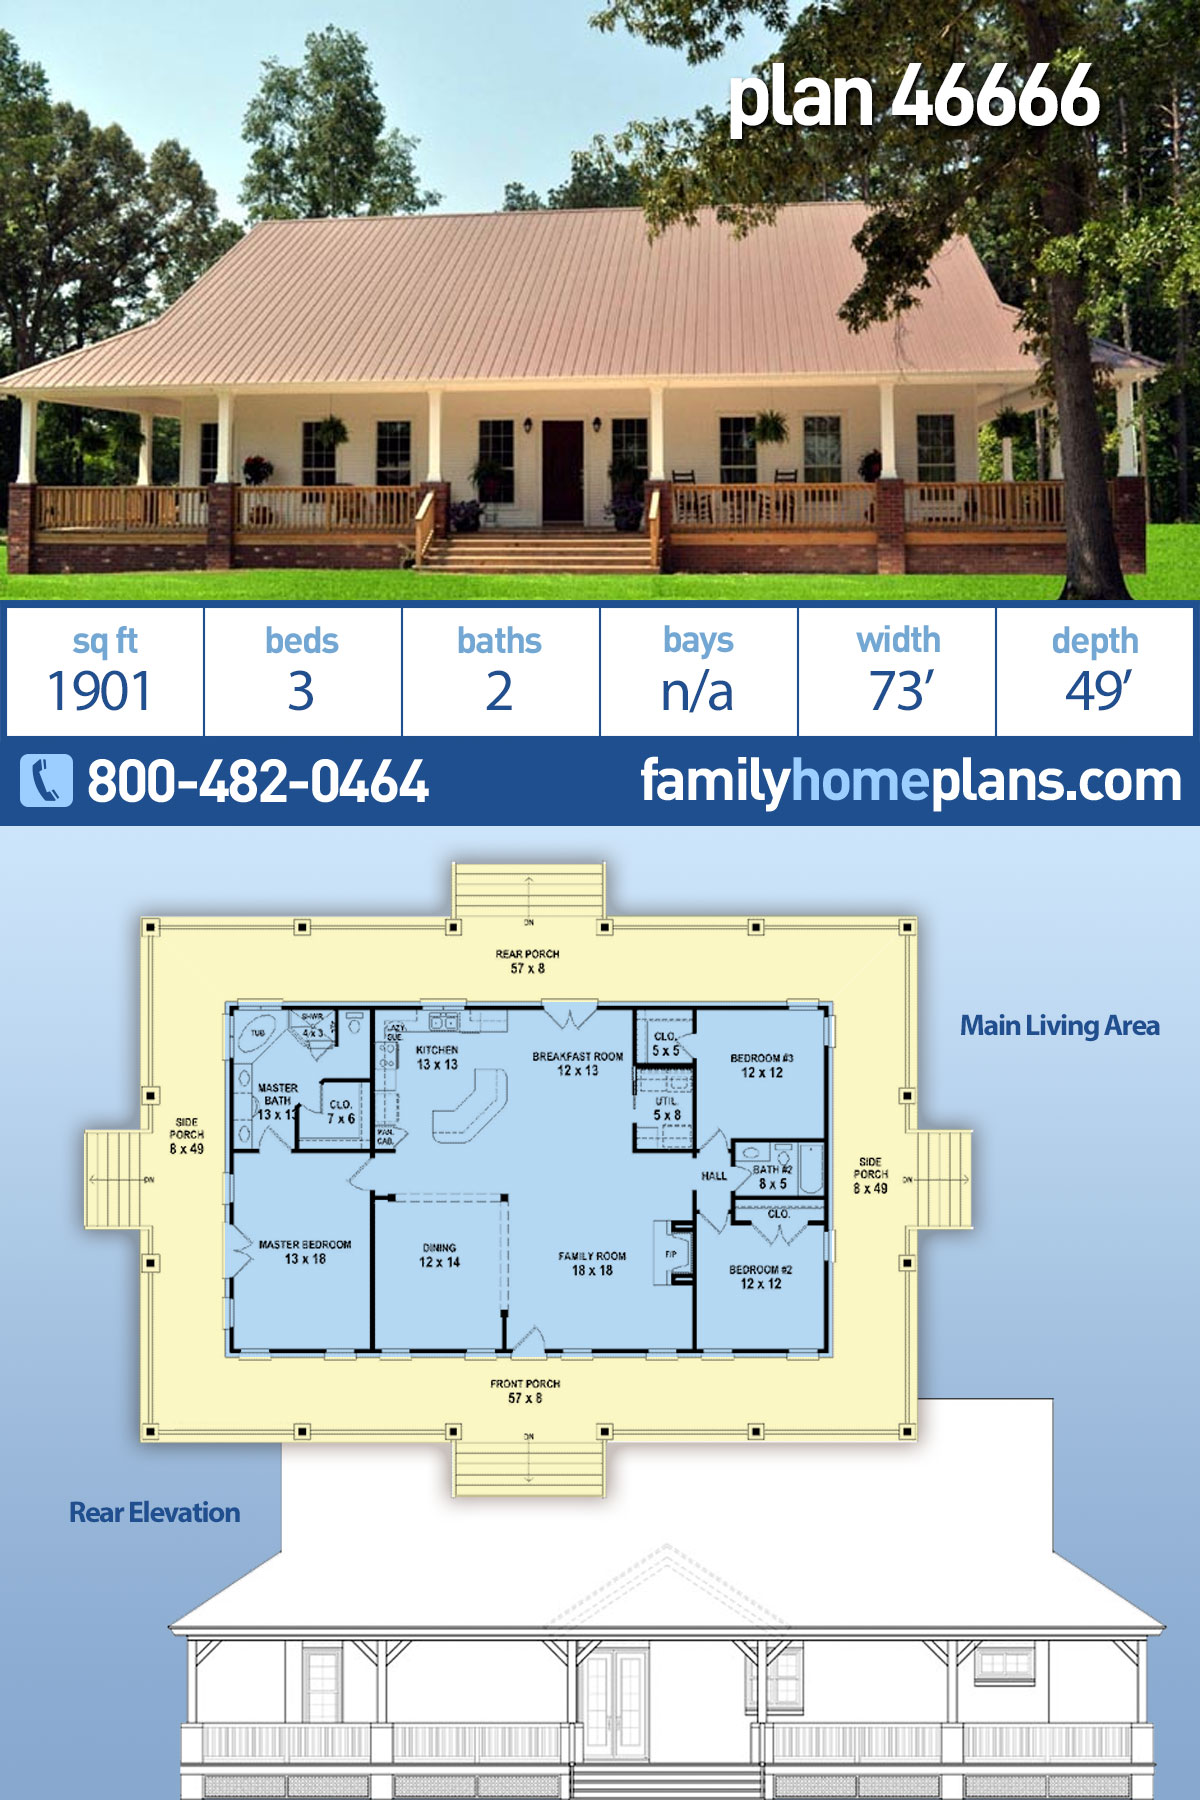 Country, Modern Farmhouse, Ranch, Traditional House Plan 46666 with 3 Beds, 2 Baths